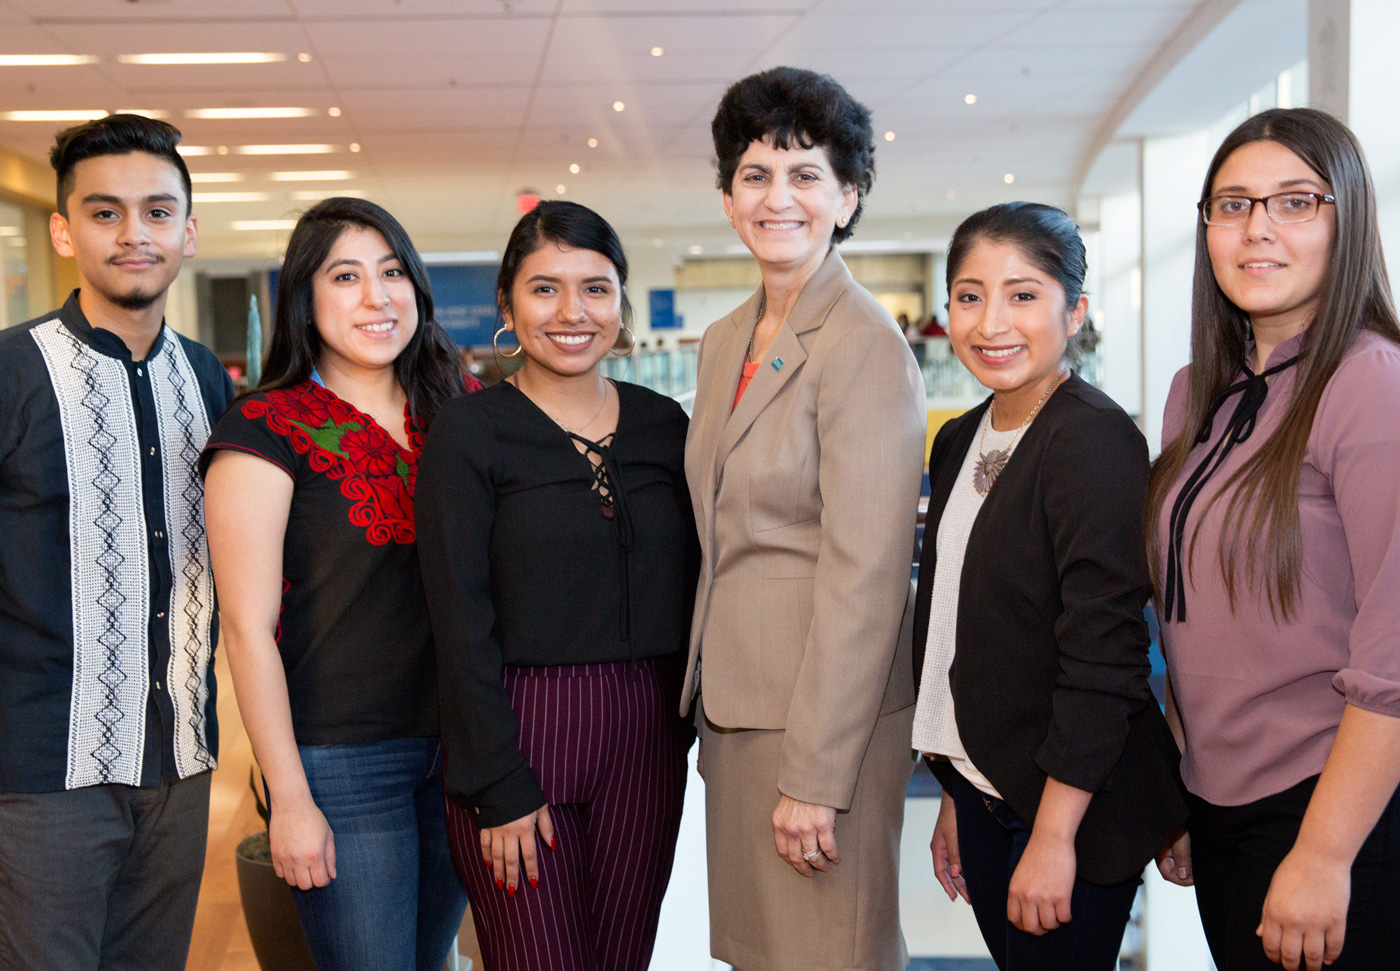 President Mary Papazian, third from the right, connects with Chicanx/Latinx Student Success Center interns Erick Macias-Chavez, Ana Ferretiz, Paola Quintanilla, Flor Sario and Janely Cerda at a spring welcome event February 5 (photo by David Schmitz).